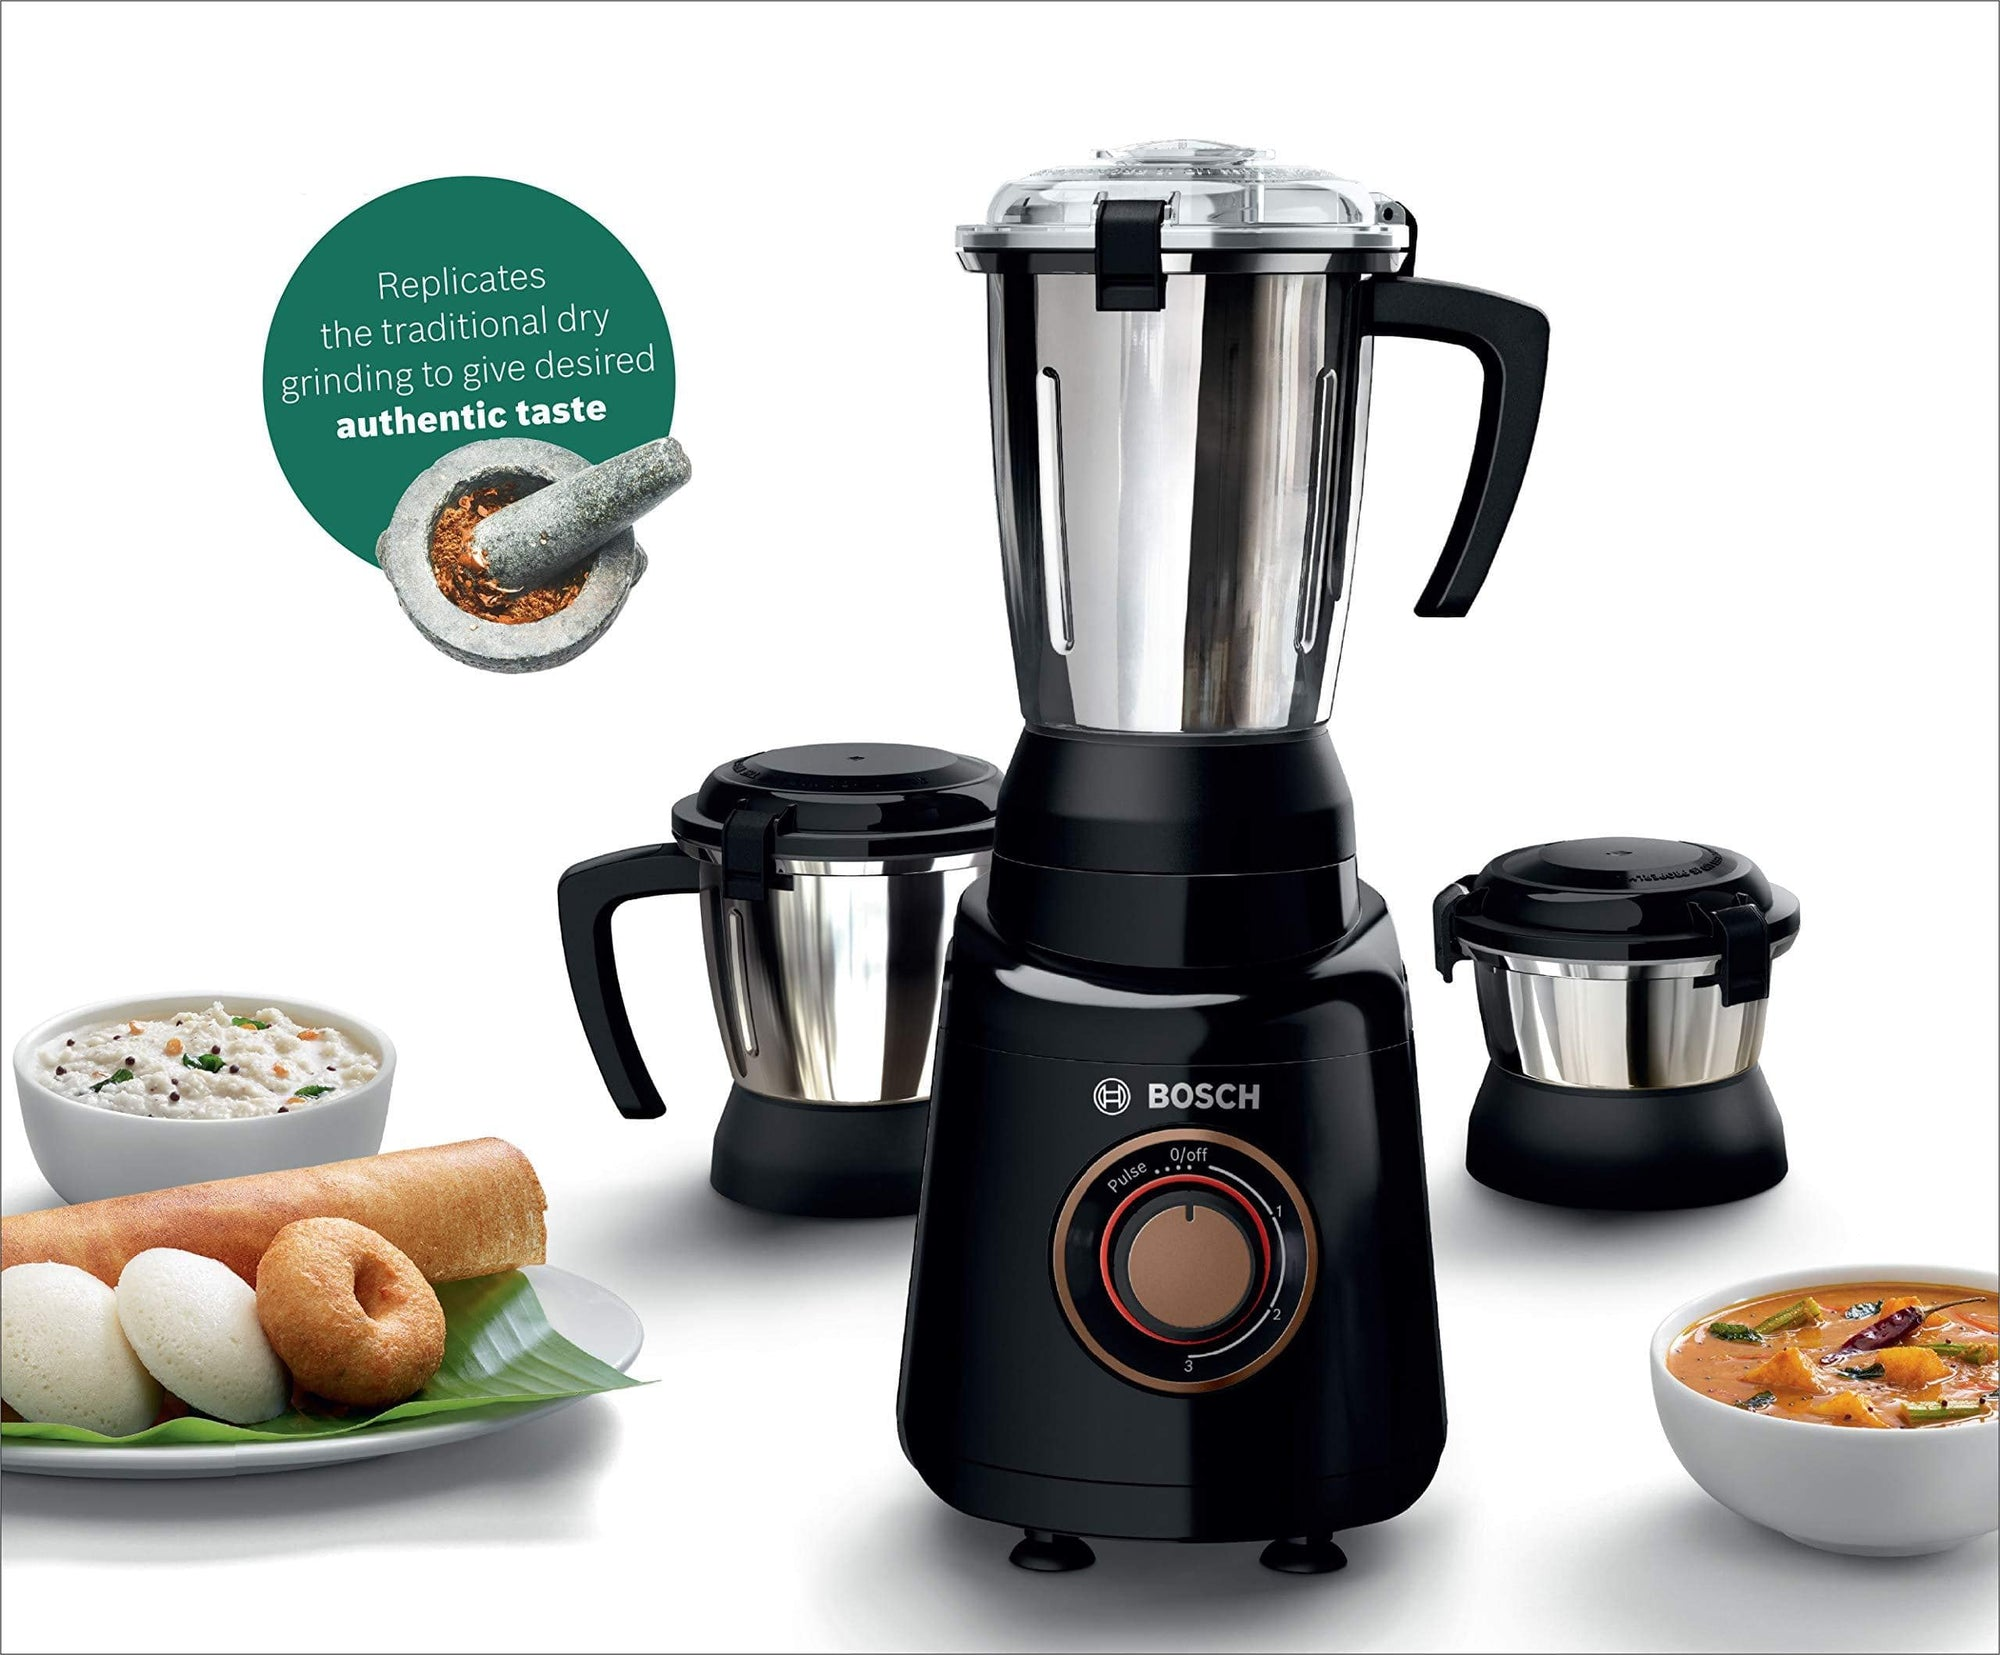 Bosch TrueMixx Bold 600-Watt Mixer Grinder with 3 Jars (Black) - KITCHEN MART